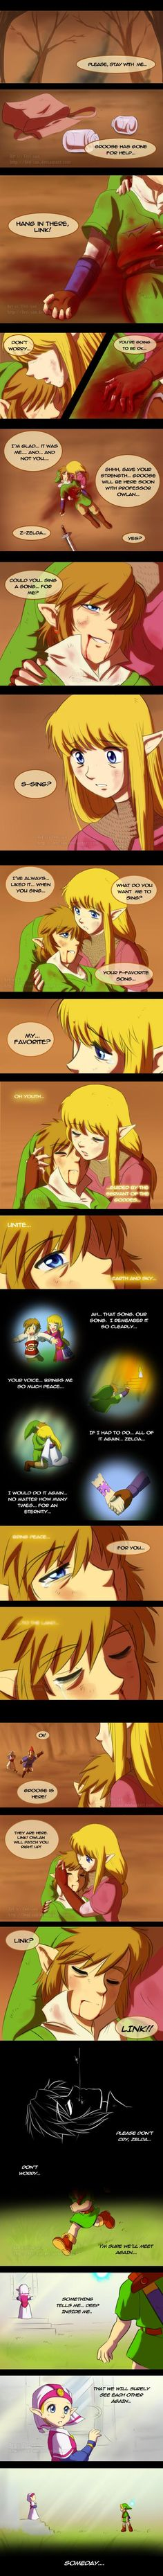 We'll meet again by Ferisae. Zelda fans, it's long but definitely worth it. I was honestly in tears by the end of it.